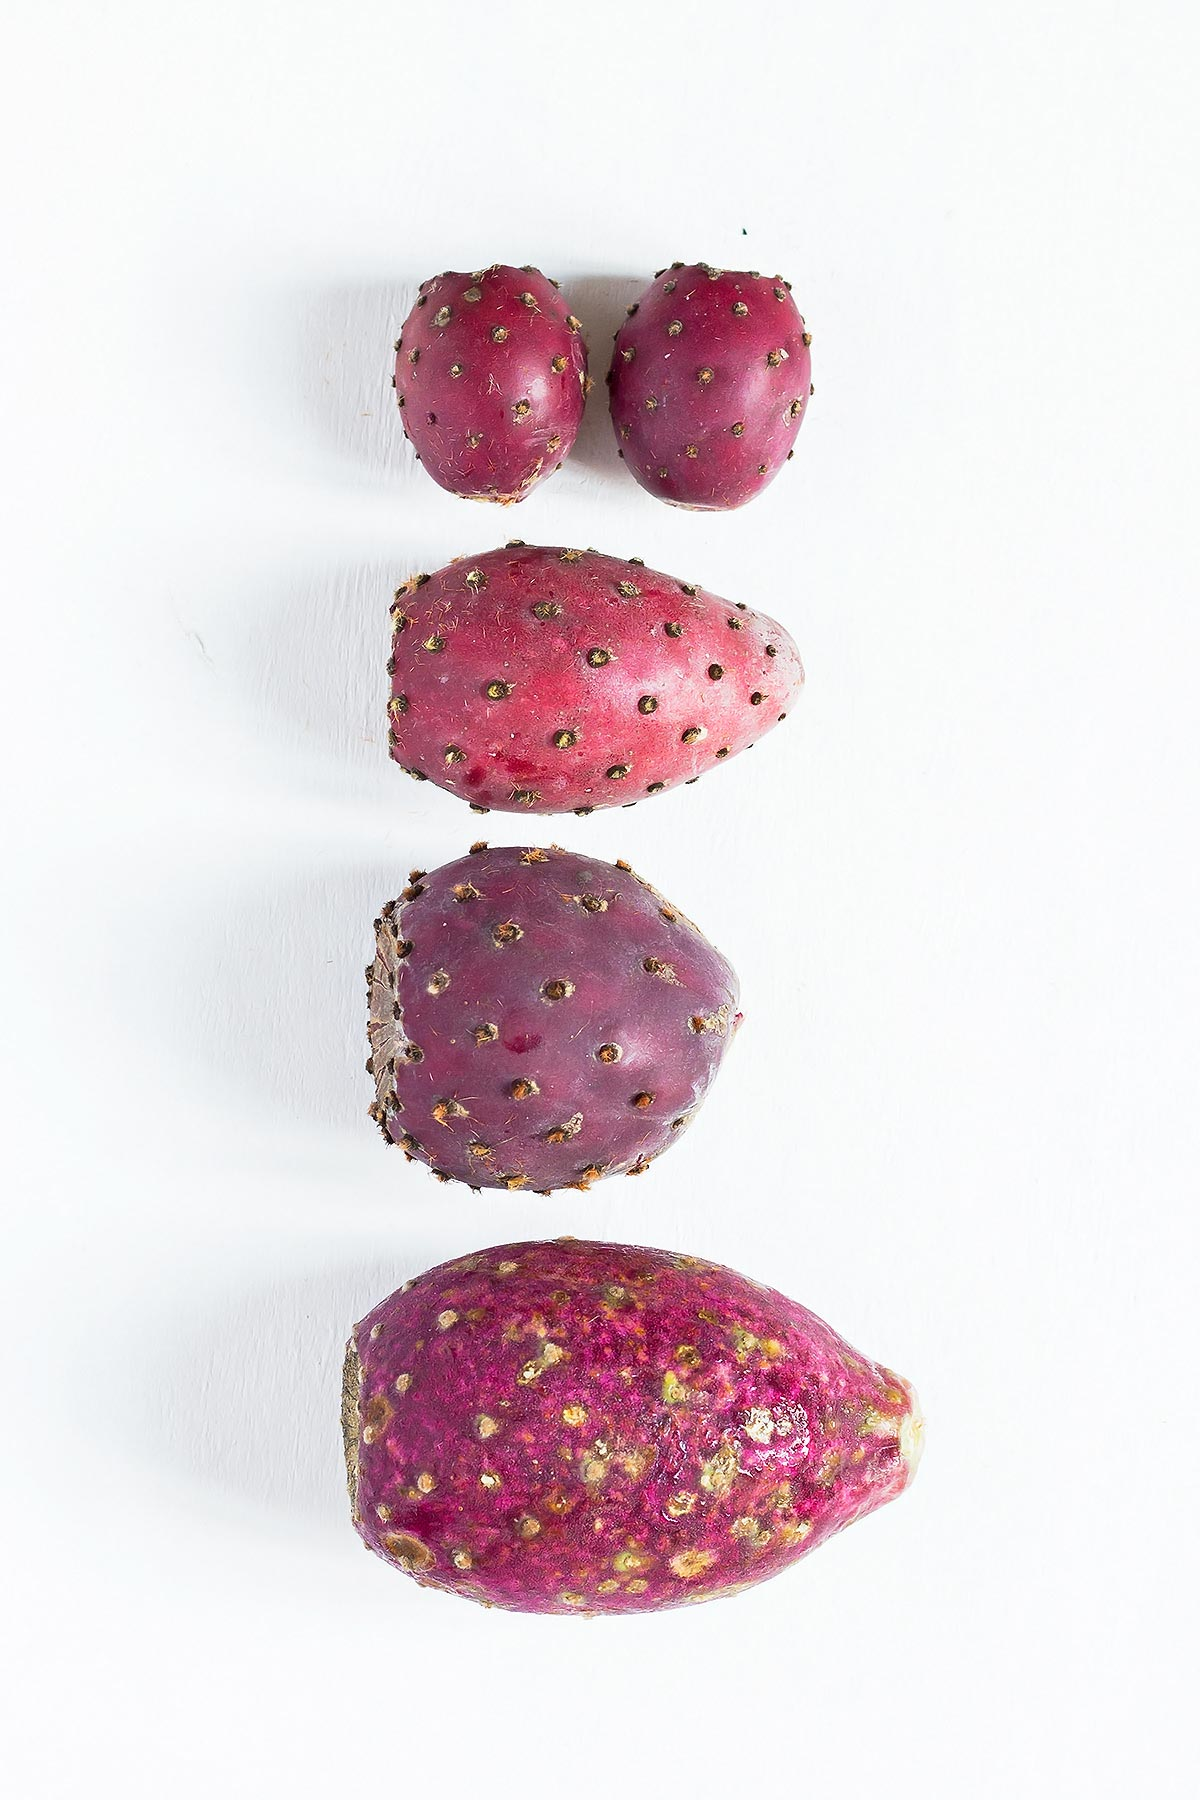 Different sized of prickly pears